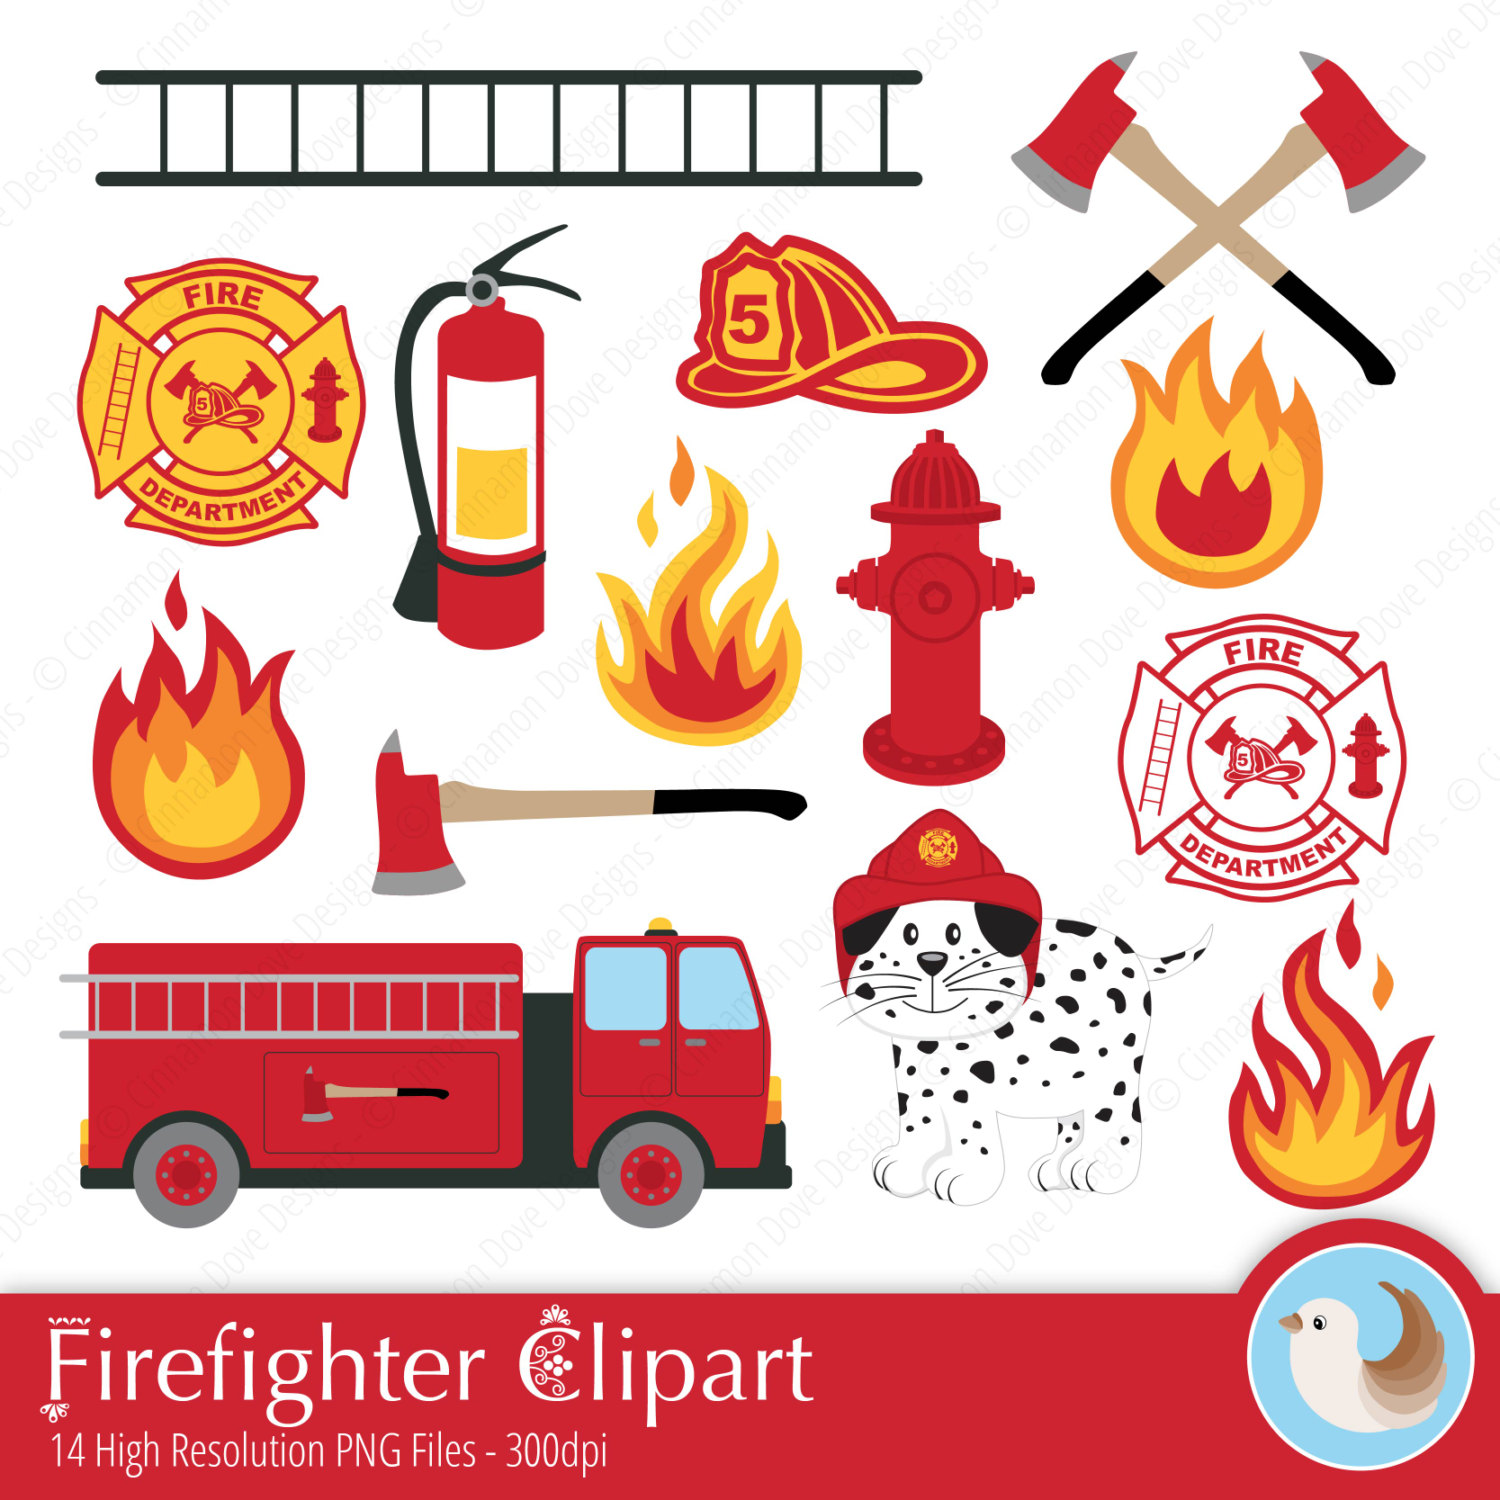 Fire Truck clipart firefighter tool Of Fire Fire Fireman Firefighter